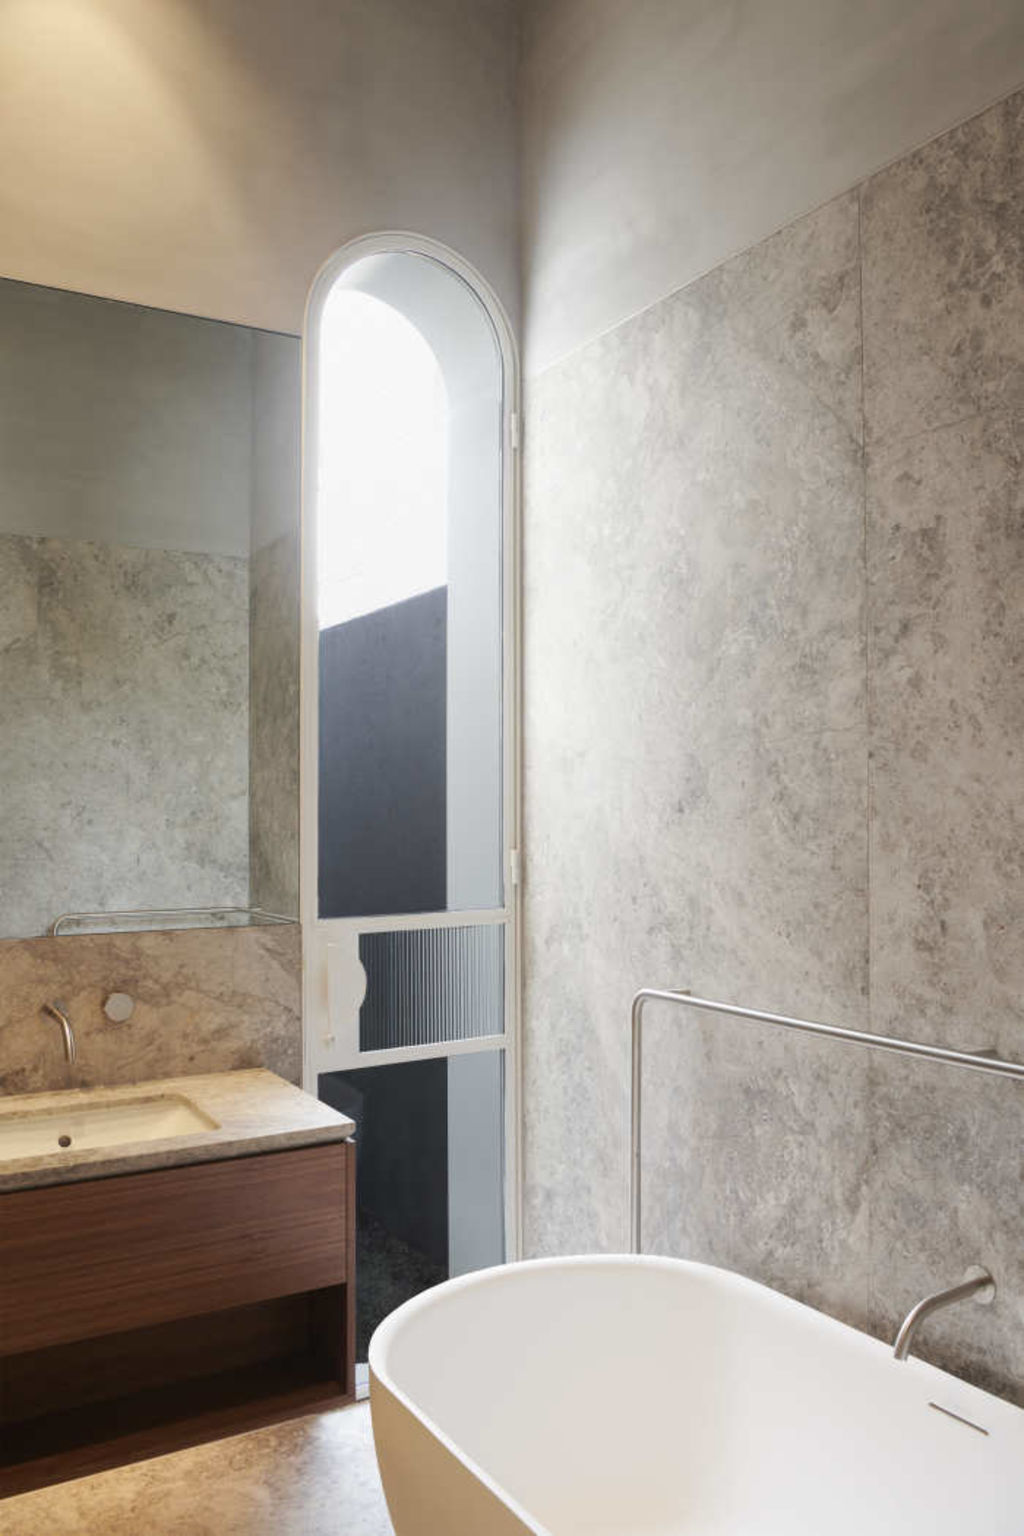 Curves echoing curves in the limestone-clad bathroom. For Toorak architecture story.